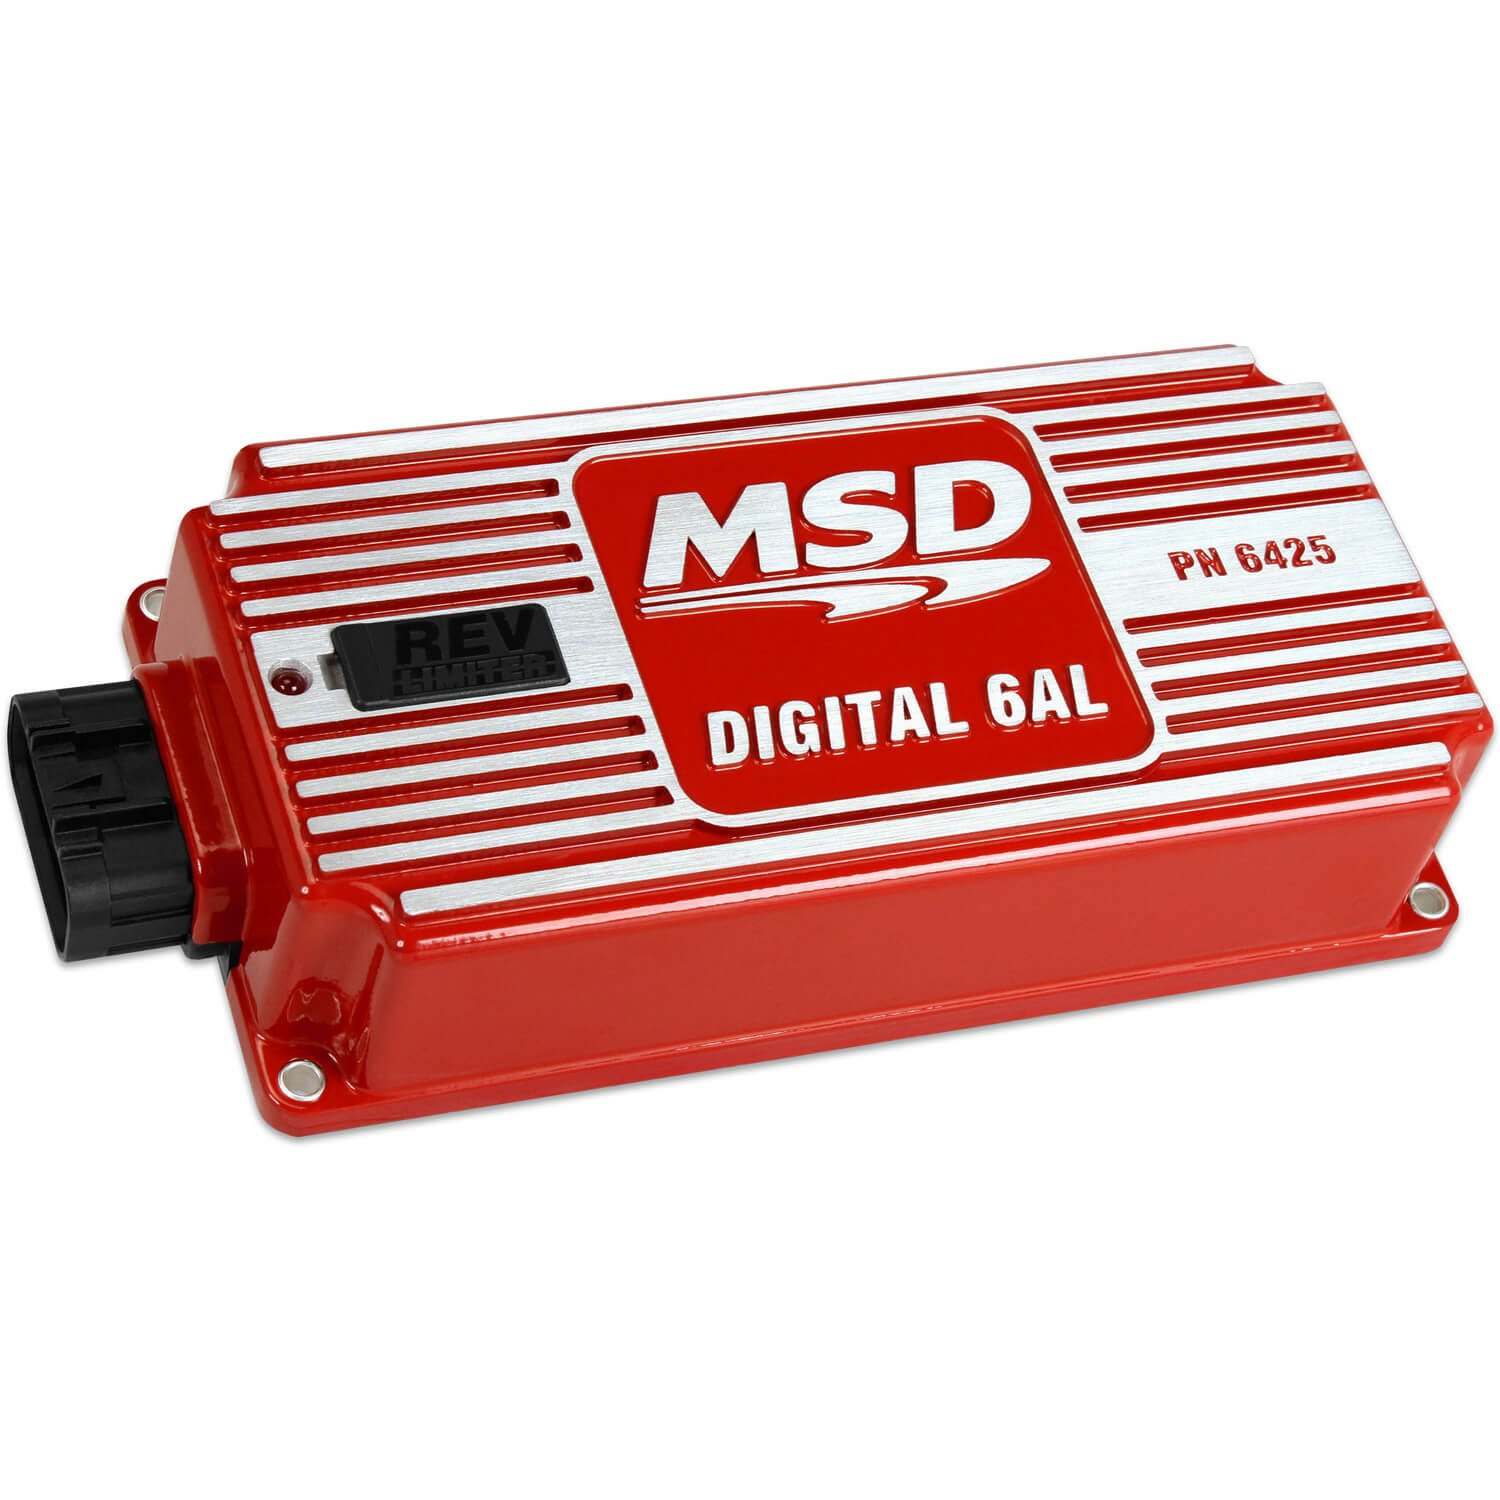 msd 6425 digital 6al ignition control msd performance products 6425 digital 6al ignition control image